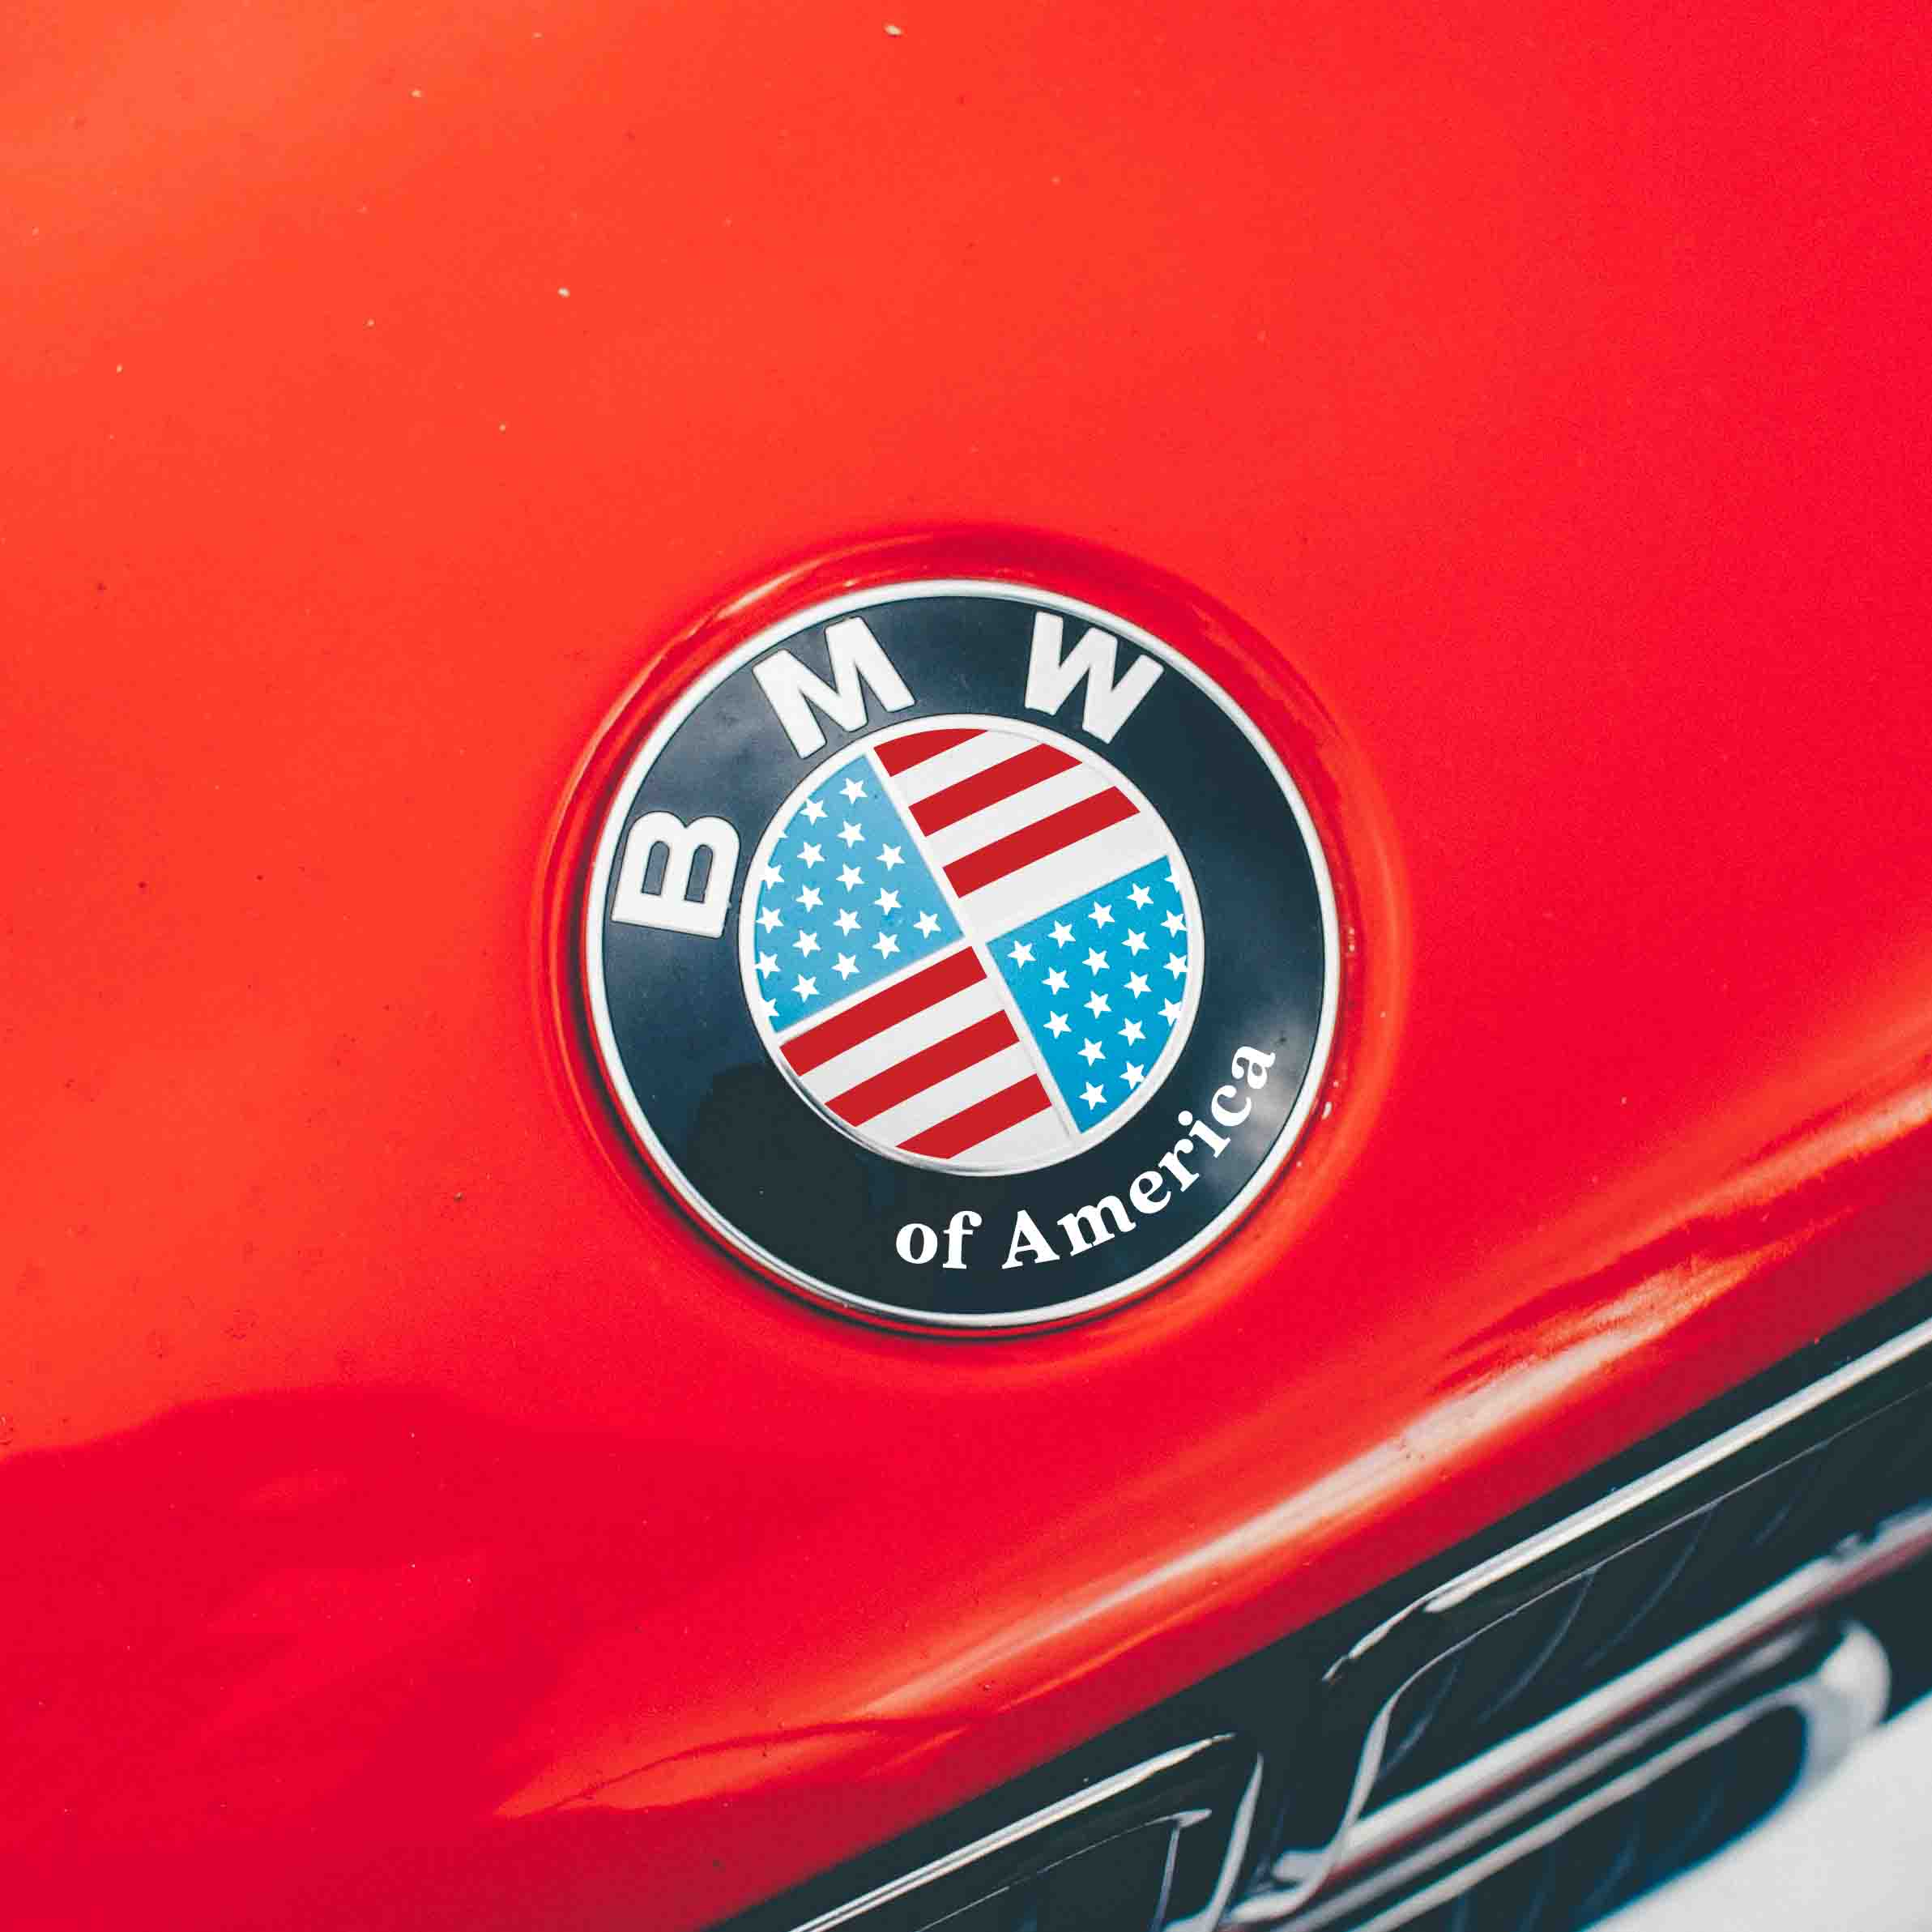 Overlay sticker that adds american flag over your BMW roundel emblem. Sticker features BMW of America lettering on the bottom.